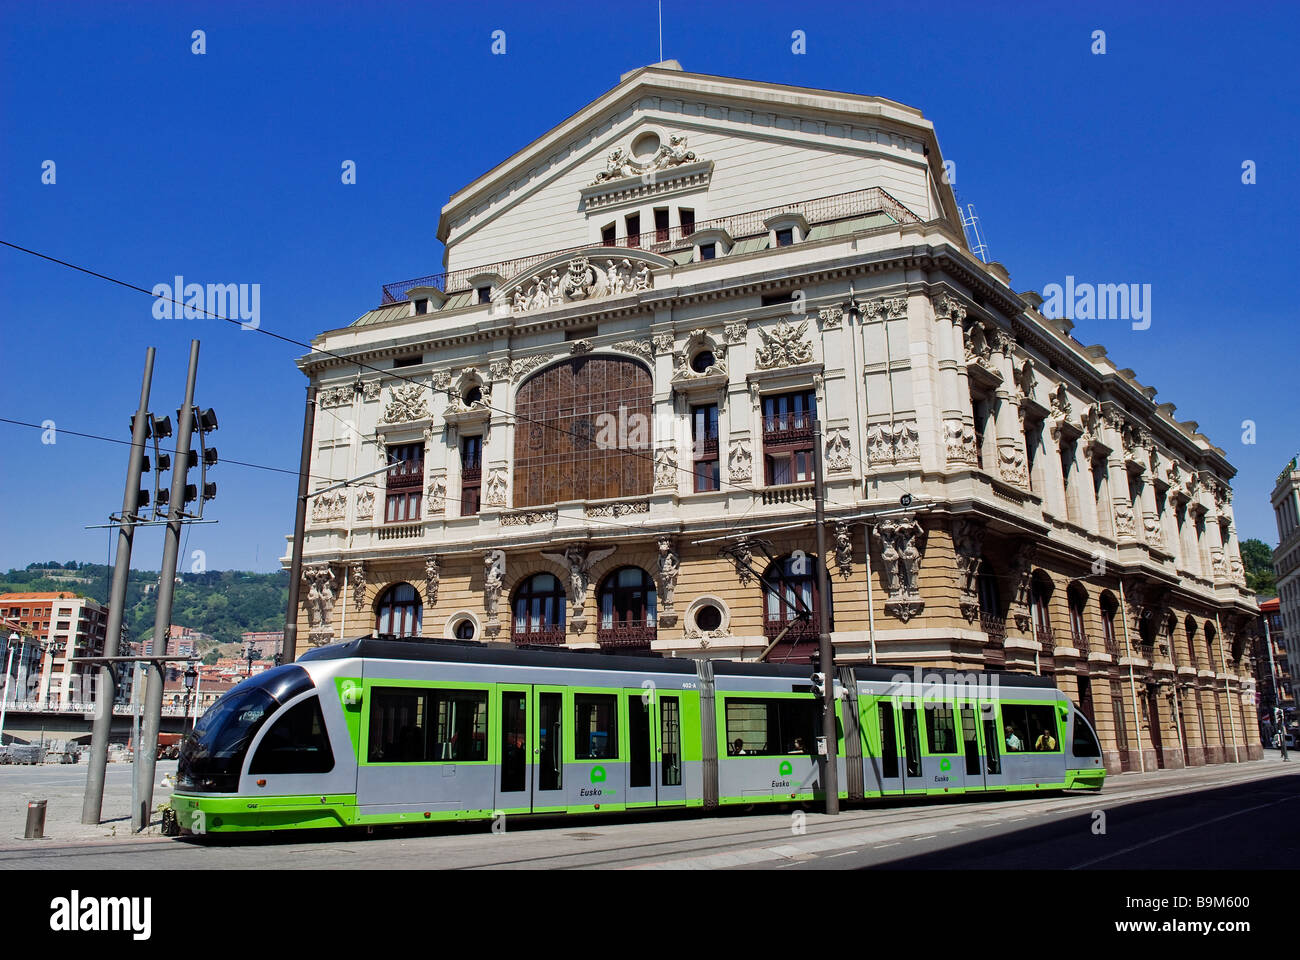 Spain, Biscaye province, Spanish Basque Country, Bilbao, the tram (Euskotren) in front of Arriaga theater - Stock Image